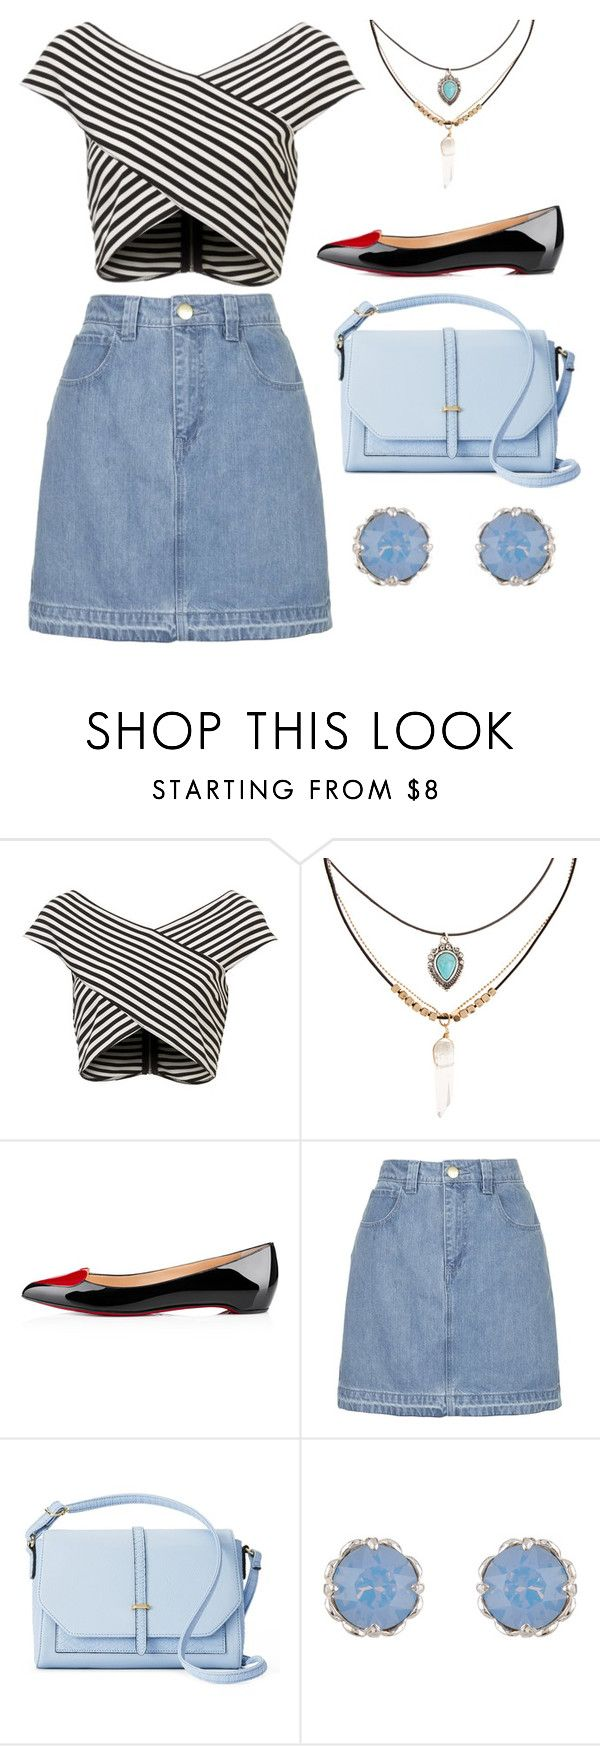 """""""Untitled #10036"""" by beatrizibelo ❤ liked on Polyvore featuring Accessorize, Topshop and Apt. 9"""